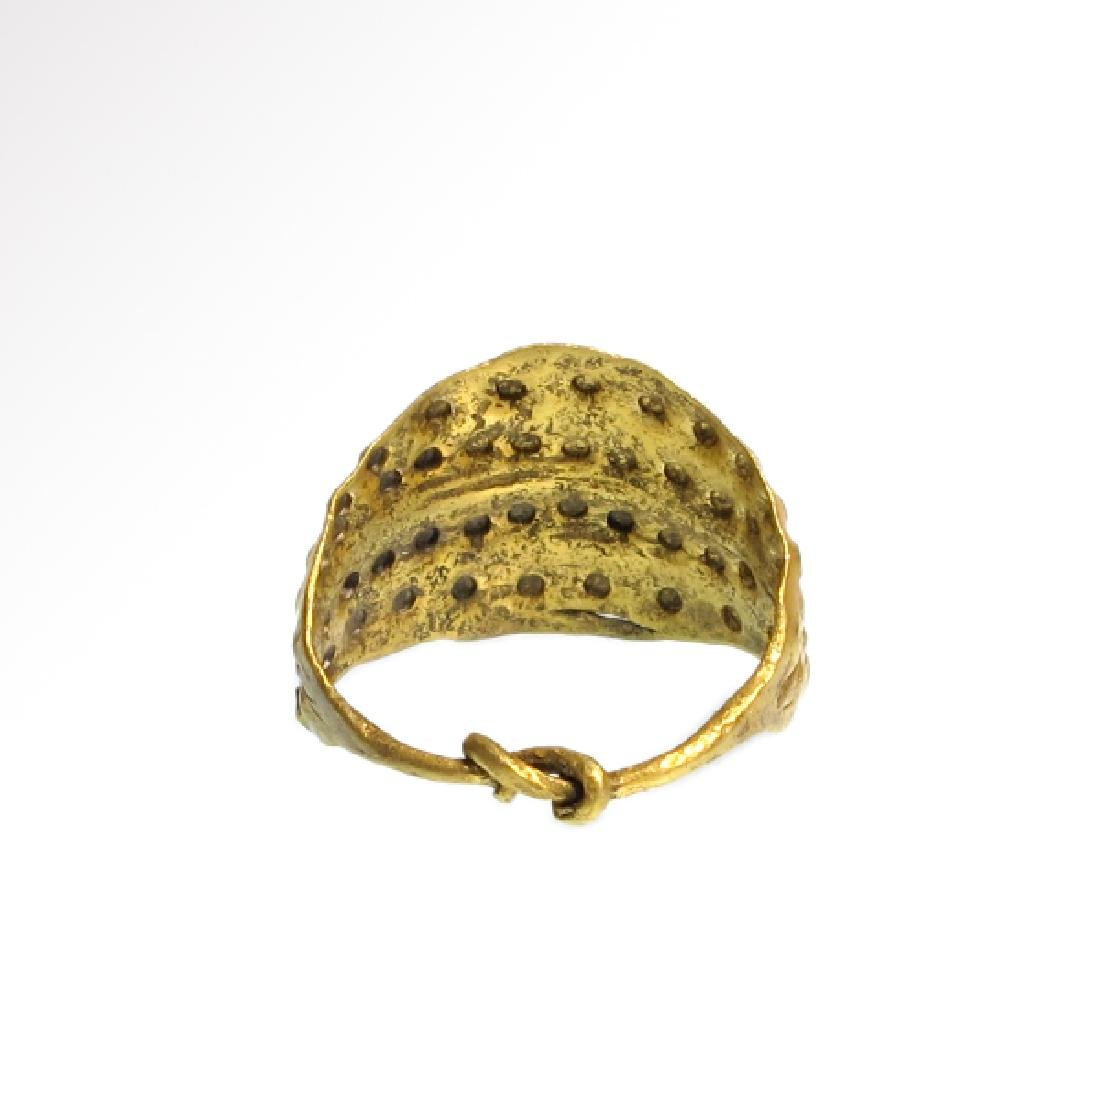 Viking Gold Ring with Punched Decoration, 11th Century - 5